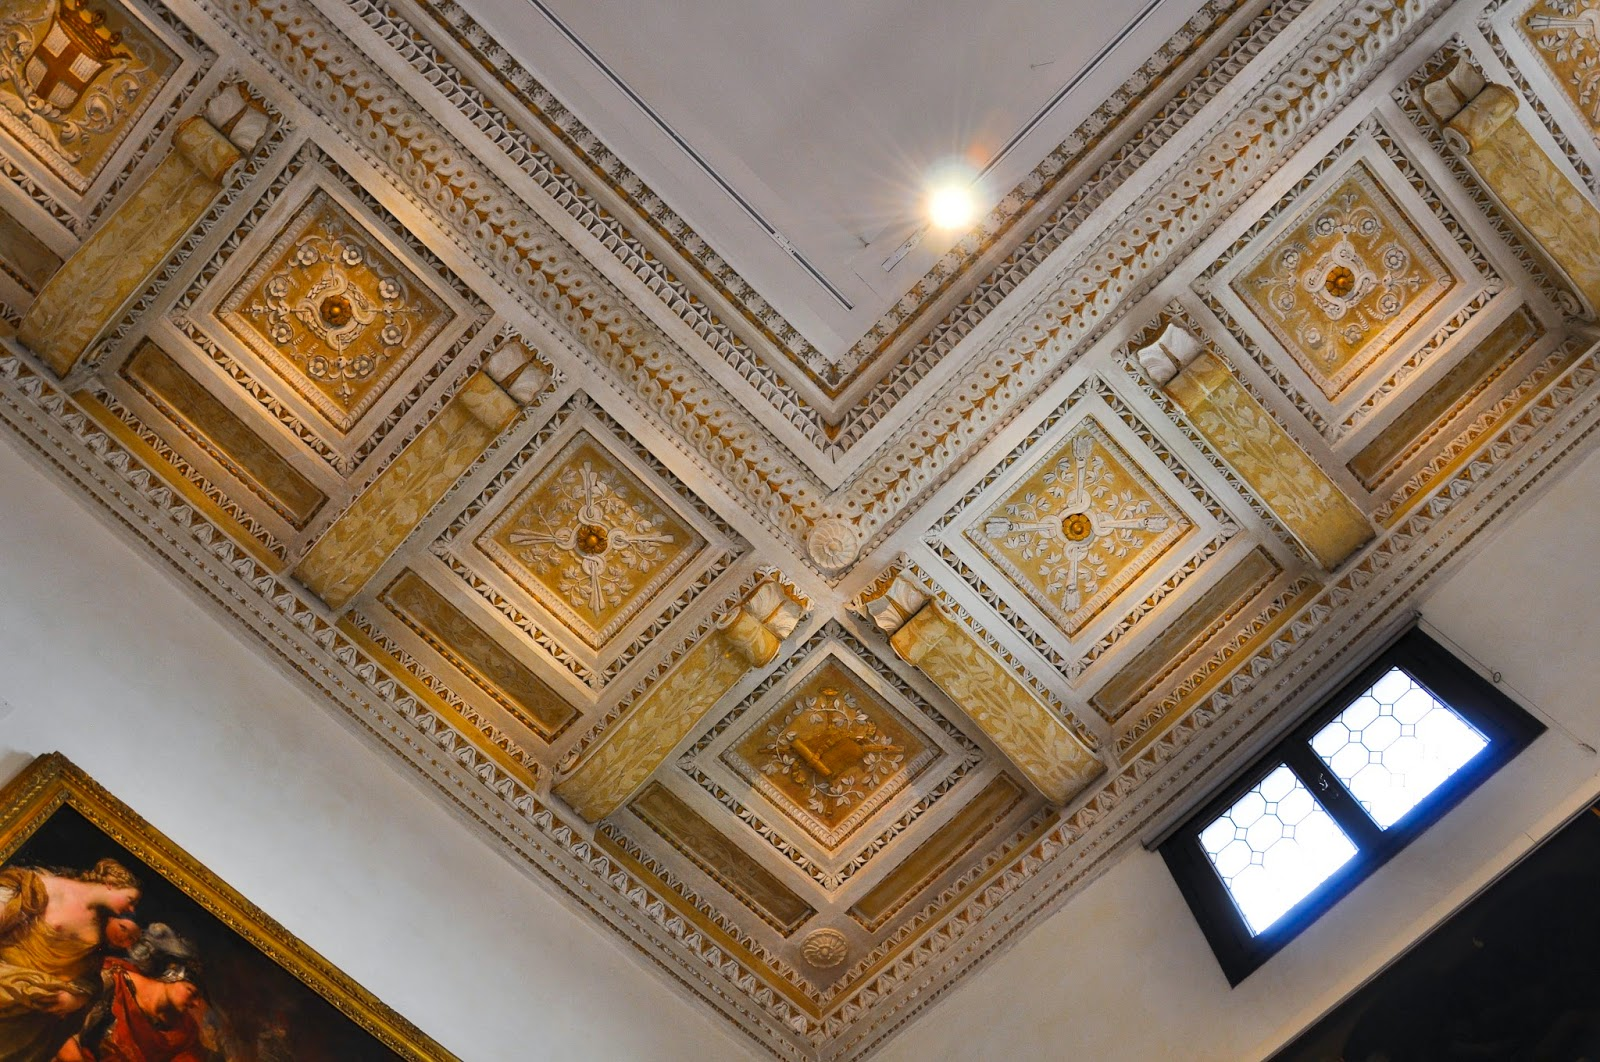 ornate ceiling main room Civic Art Gallery Palazzo Chiericati Vicenza Italy